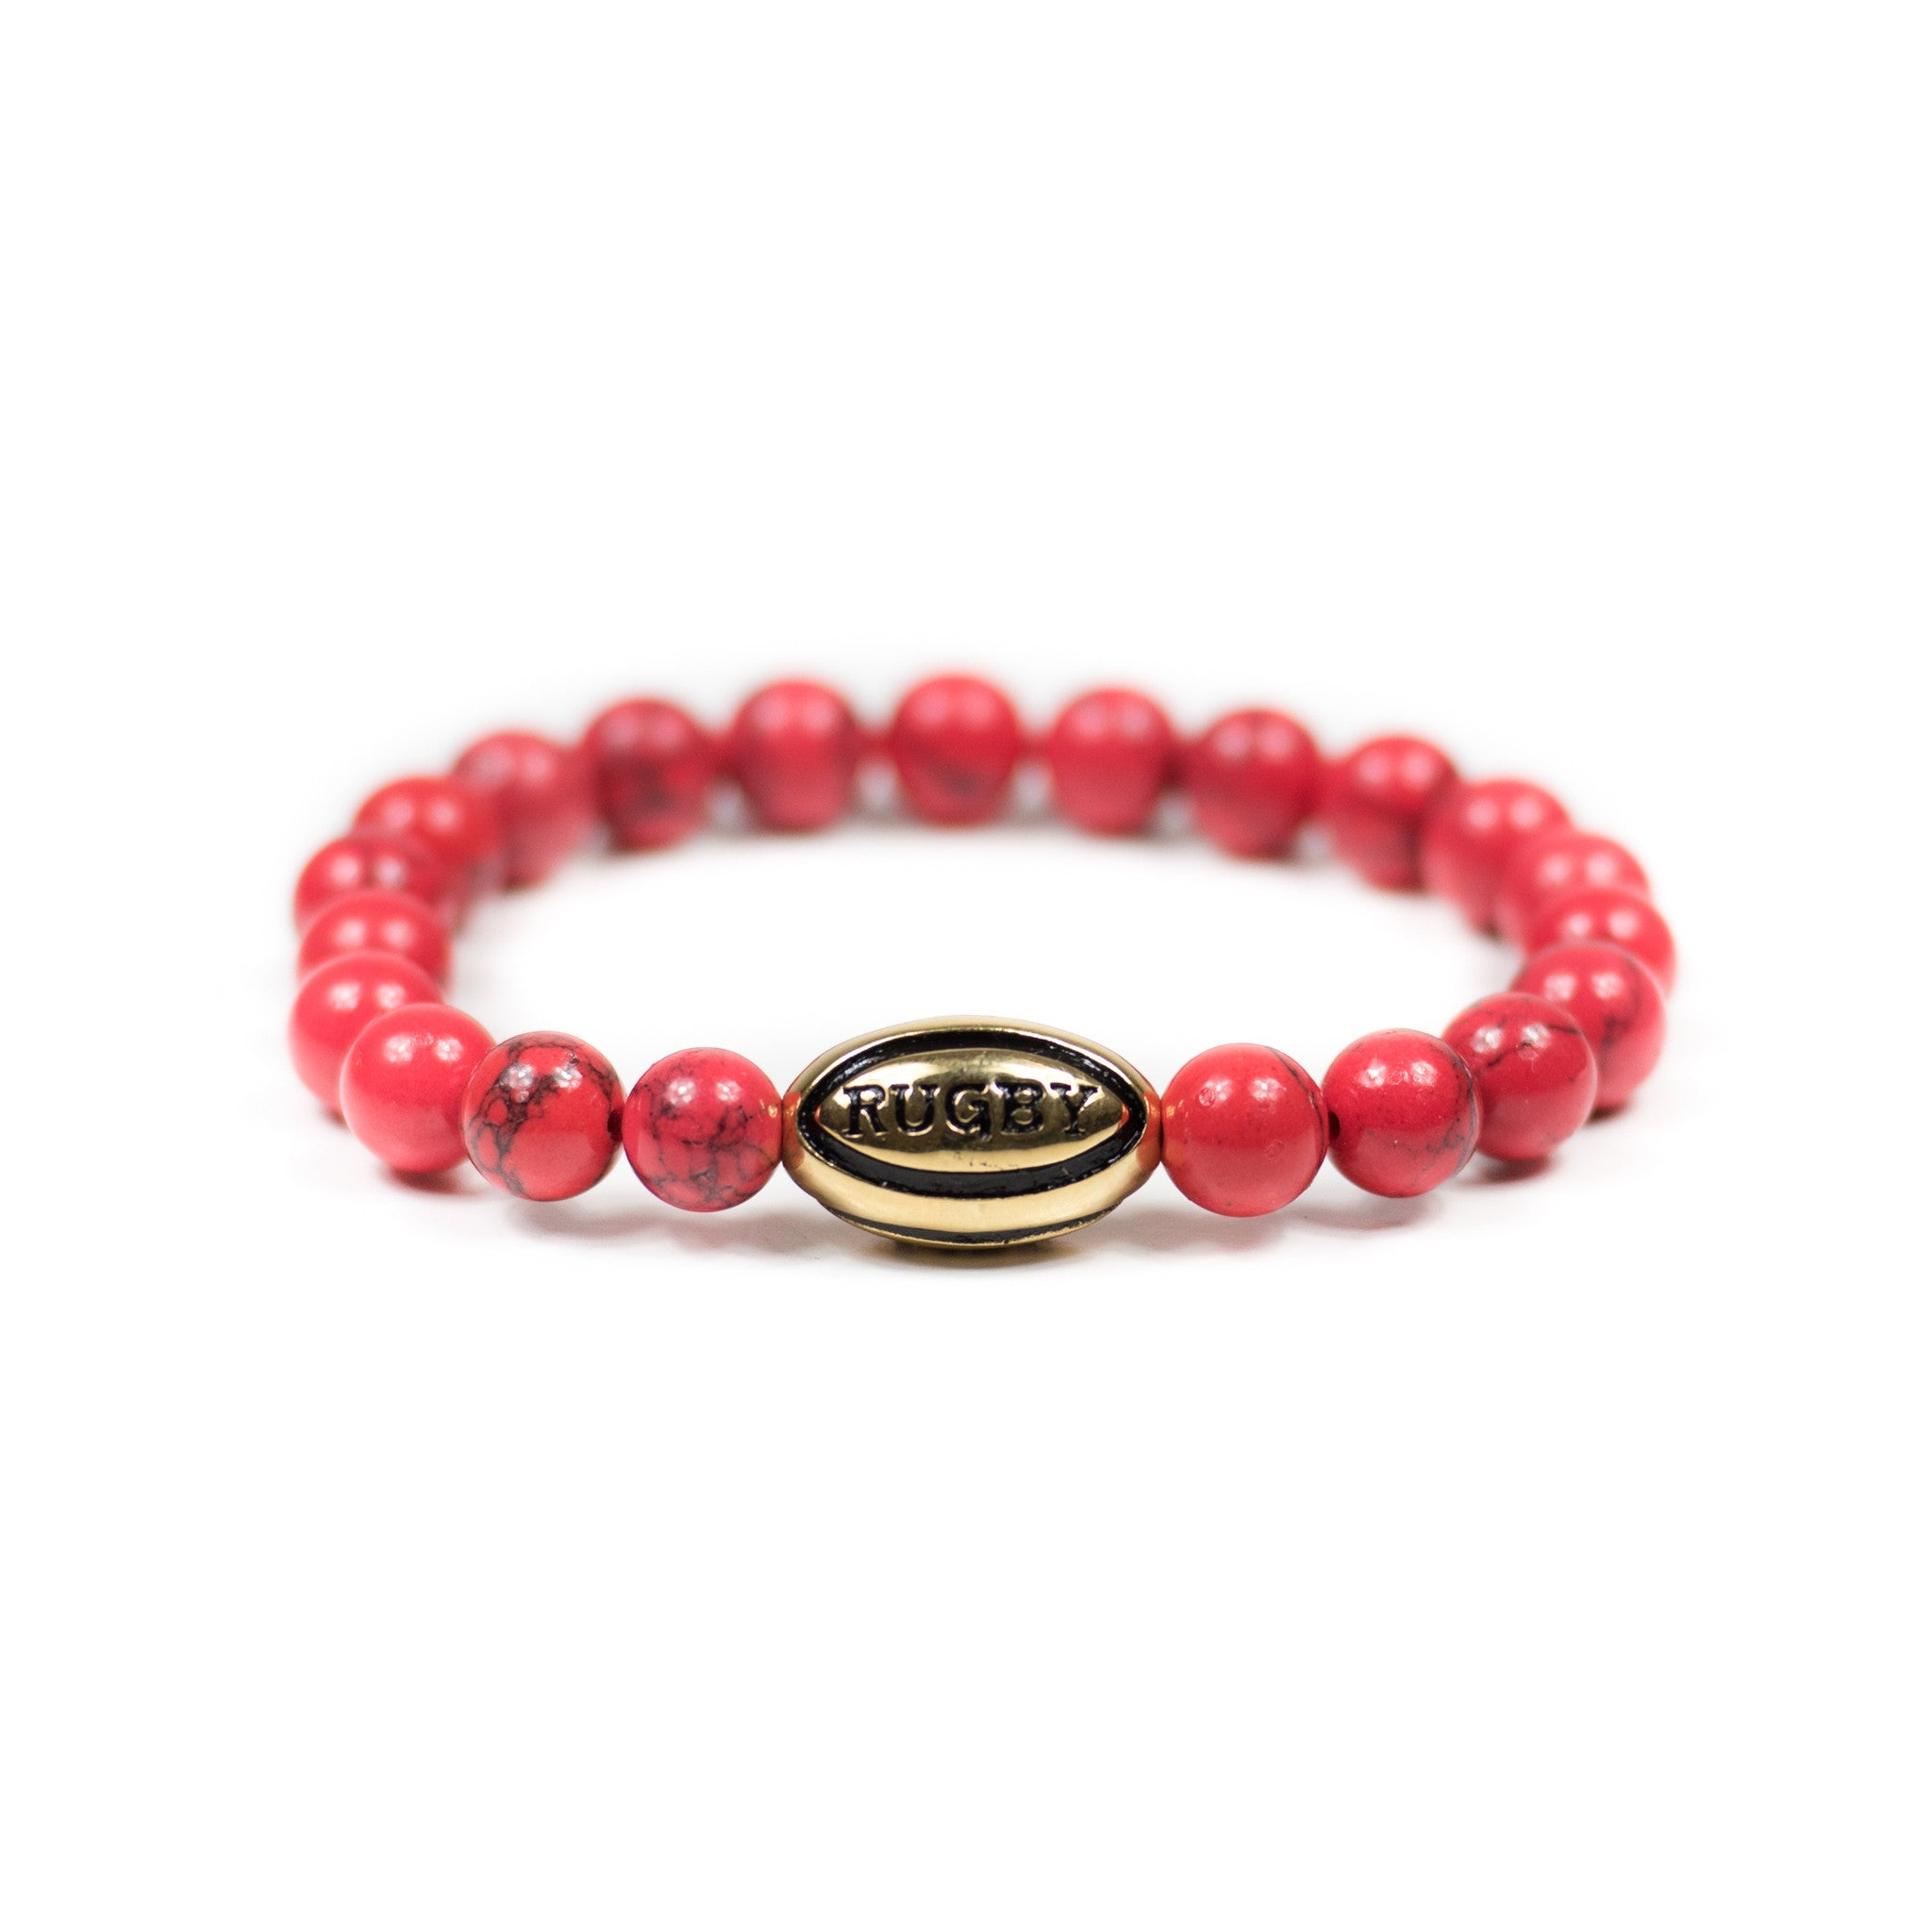 Red Coral w/ Gold Rugby Ball